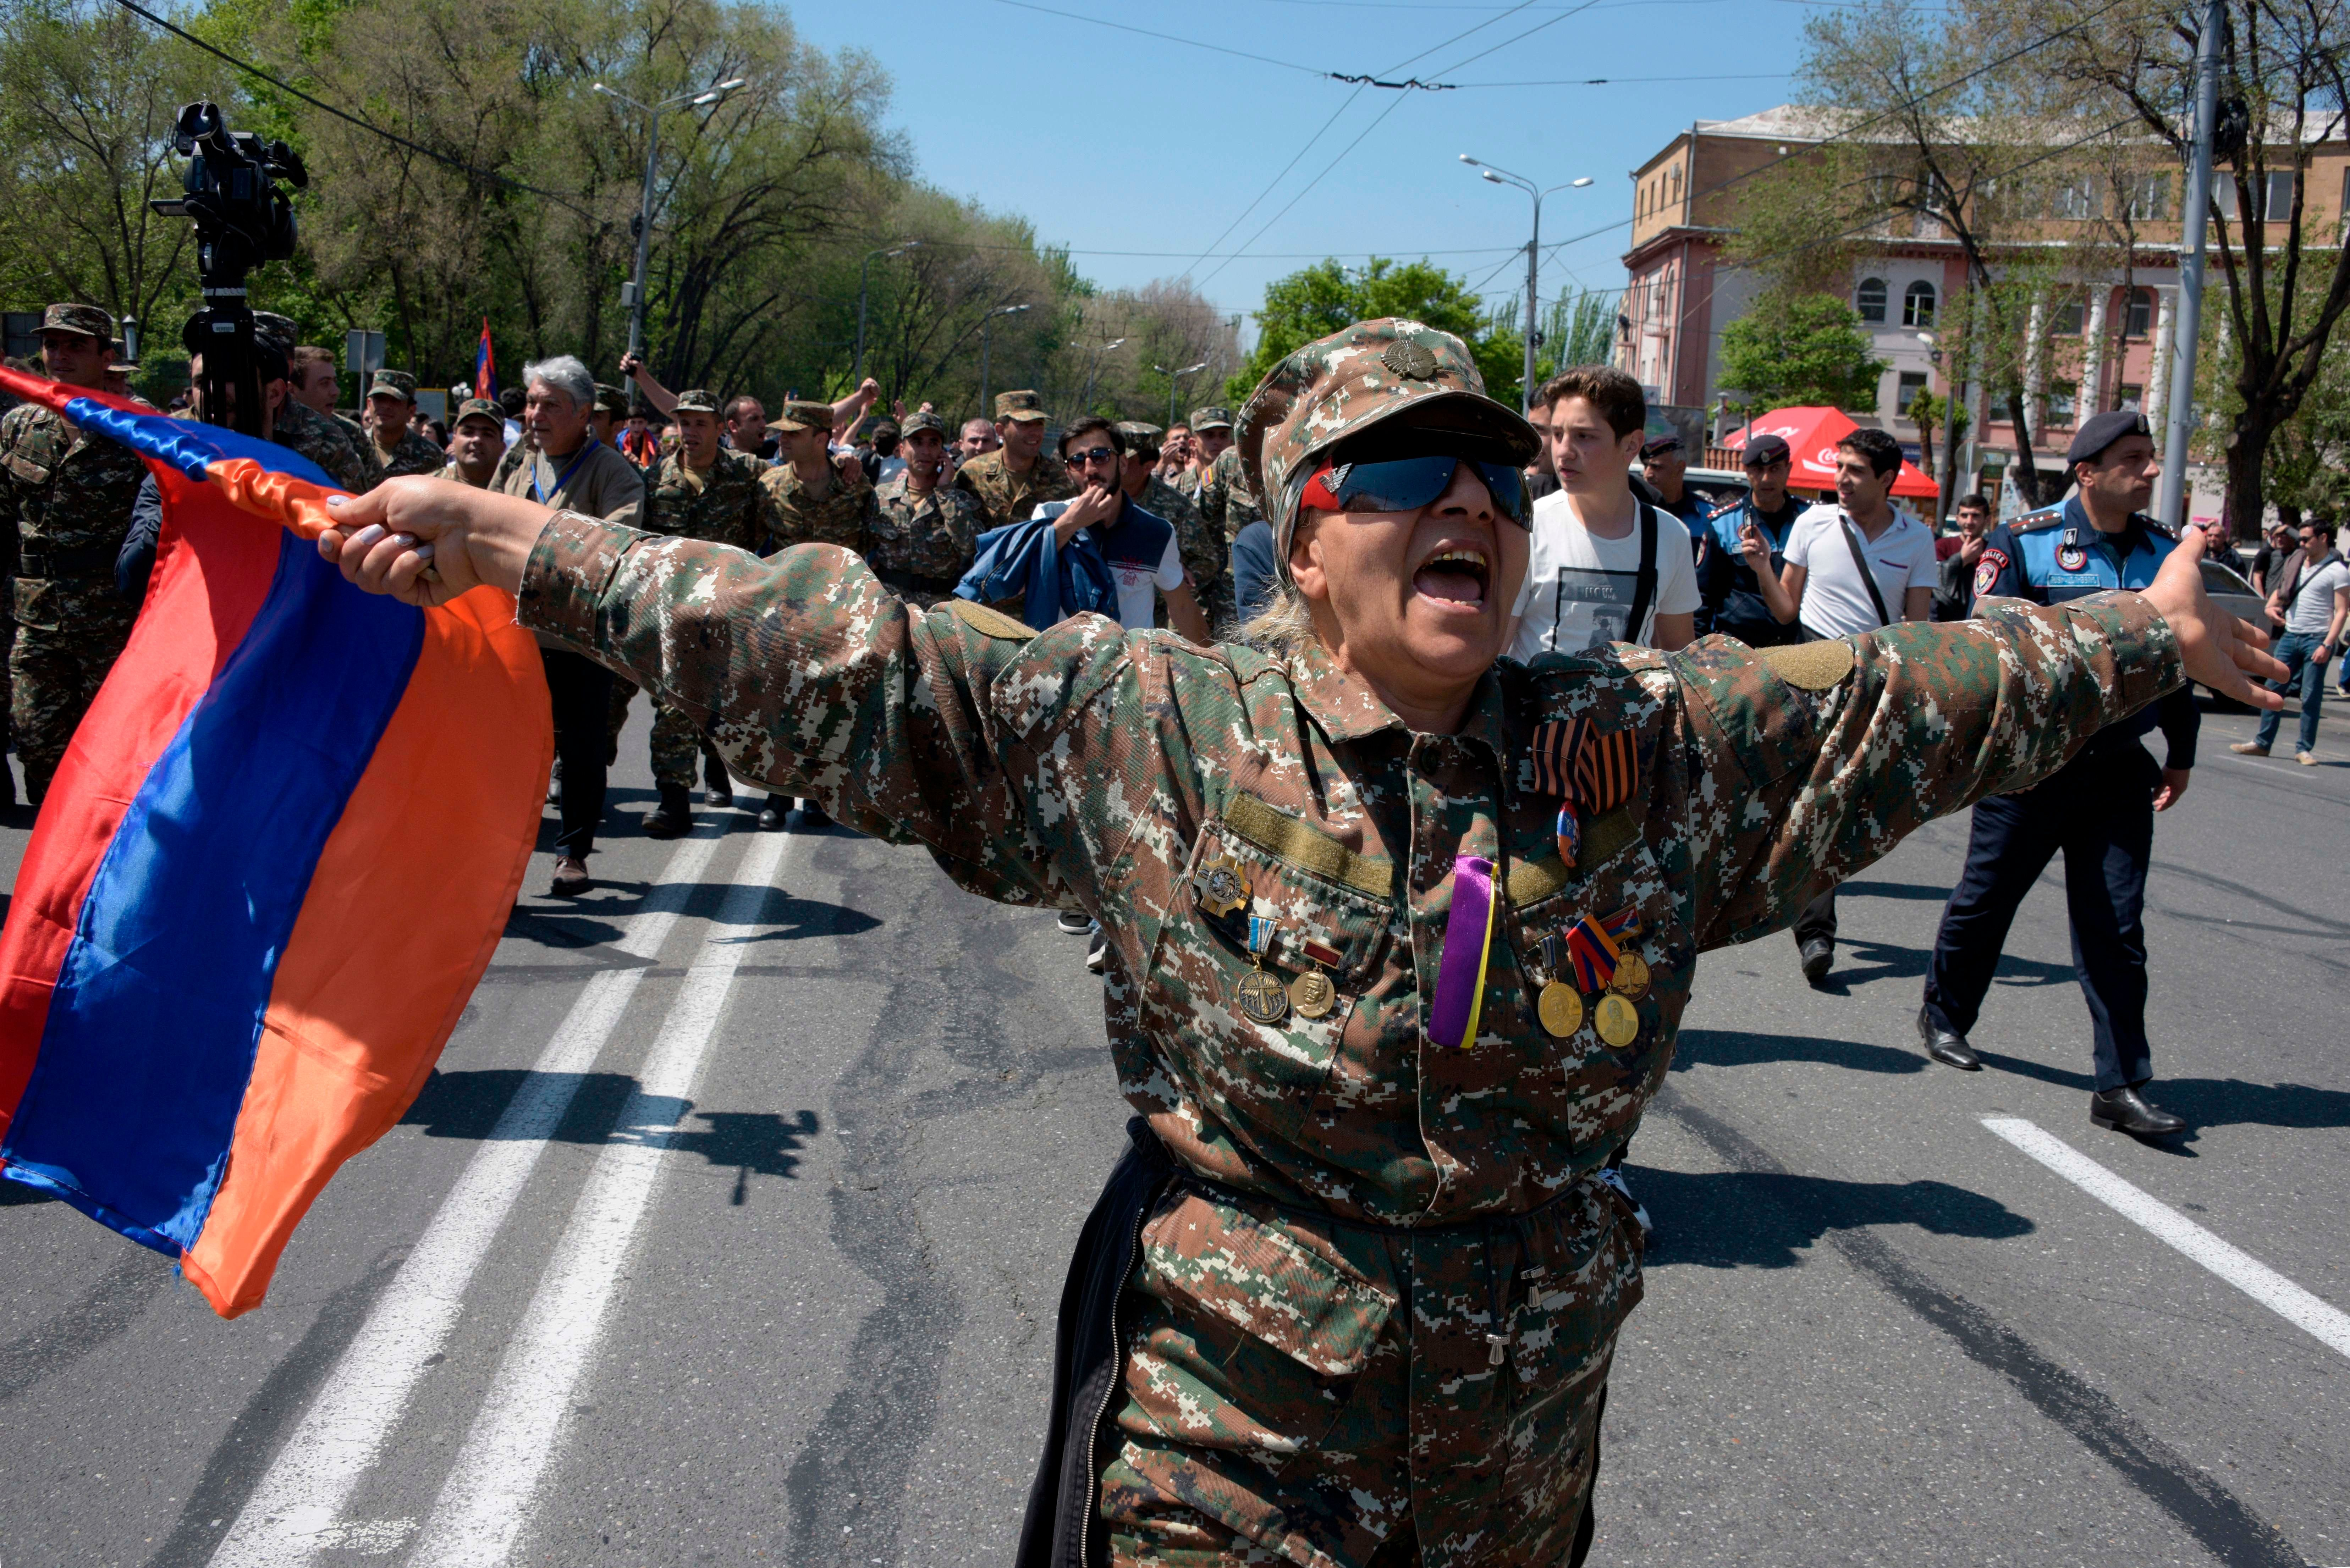 Demonstrators march through the streets of Yerevan on April 23, 2018, to protest the former president's election as prime minister. - Hundreds of opposition supporters took to the streets of Armenia's capital on April 23, 2018 amid rising political turmoil as the whereabouts of the protest leader remained unclear a day after he was detained. (Photo by KAREN MINASYAN / AFP)        (Photo credit should read KAREN MINASYAN/AFP/Getty Images)